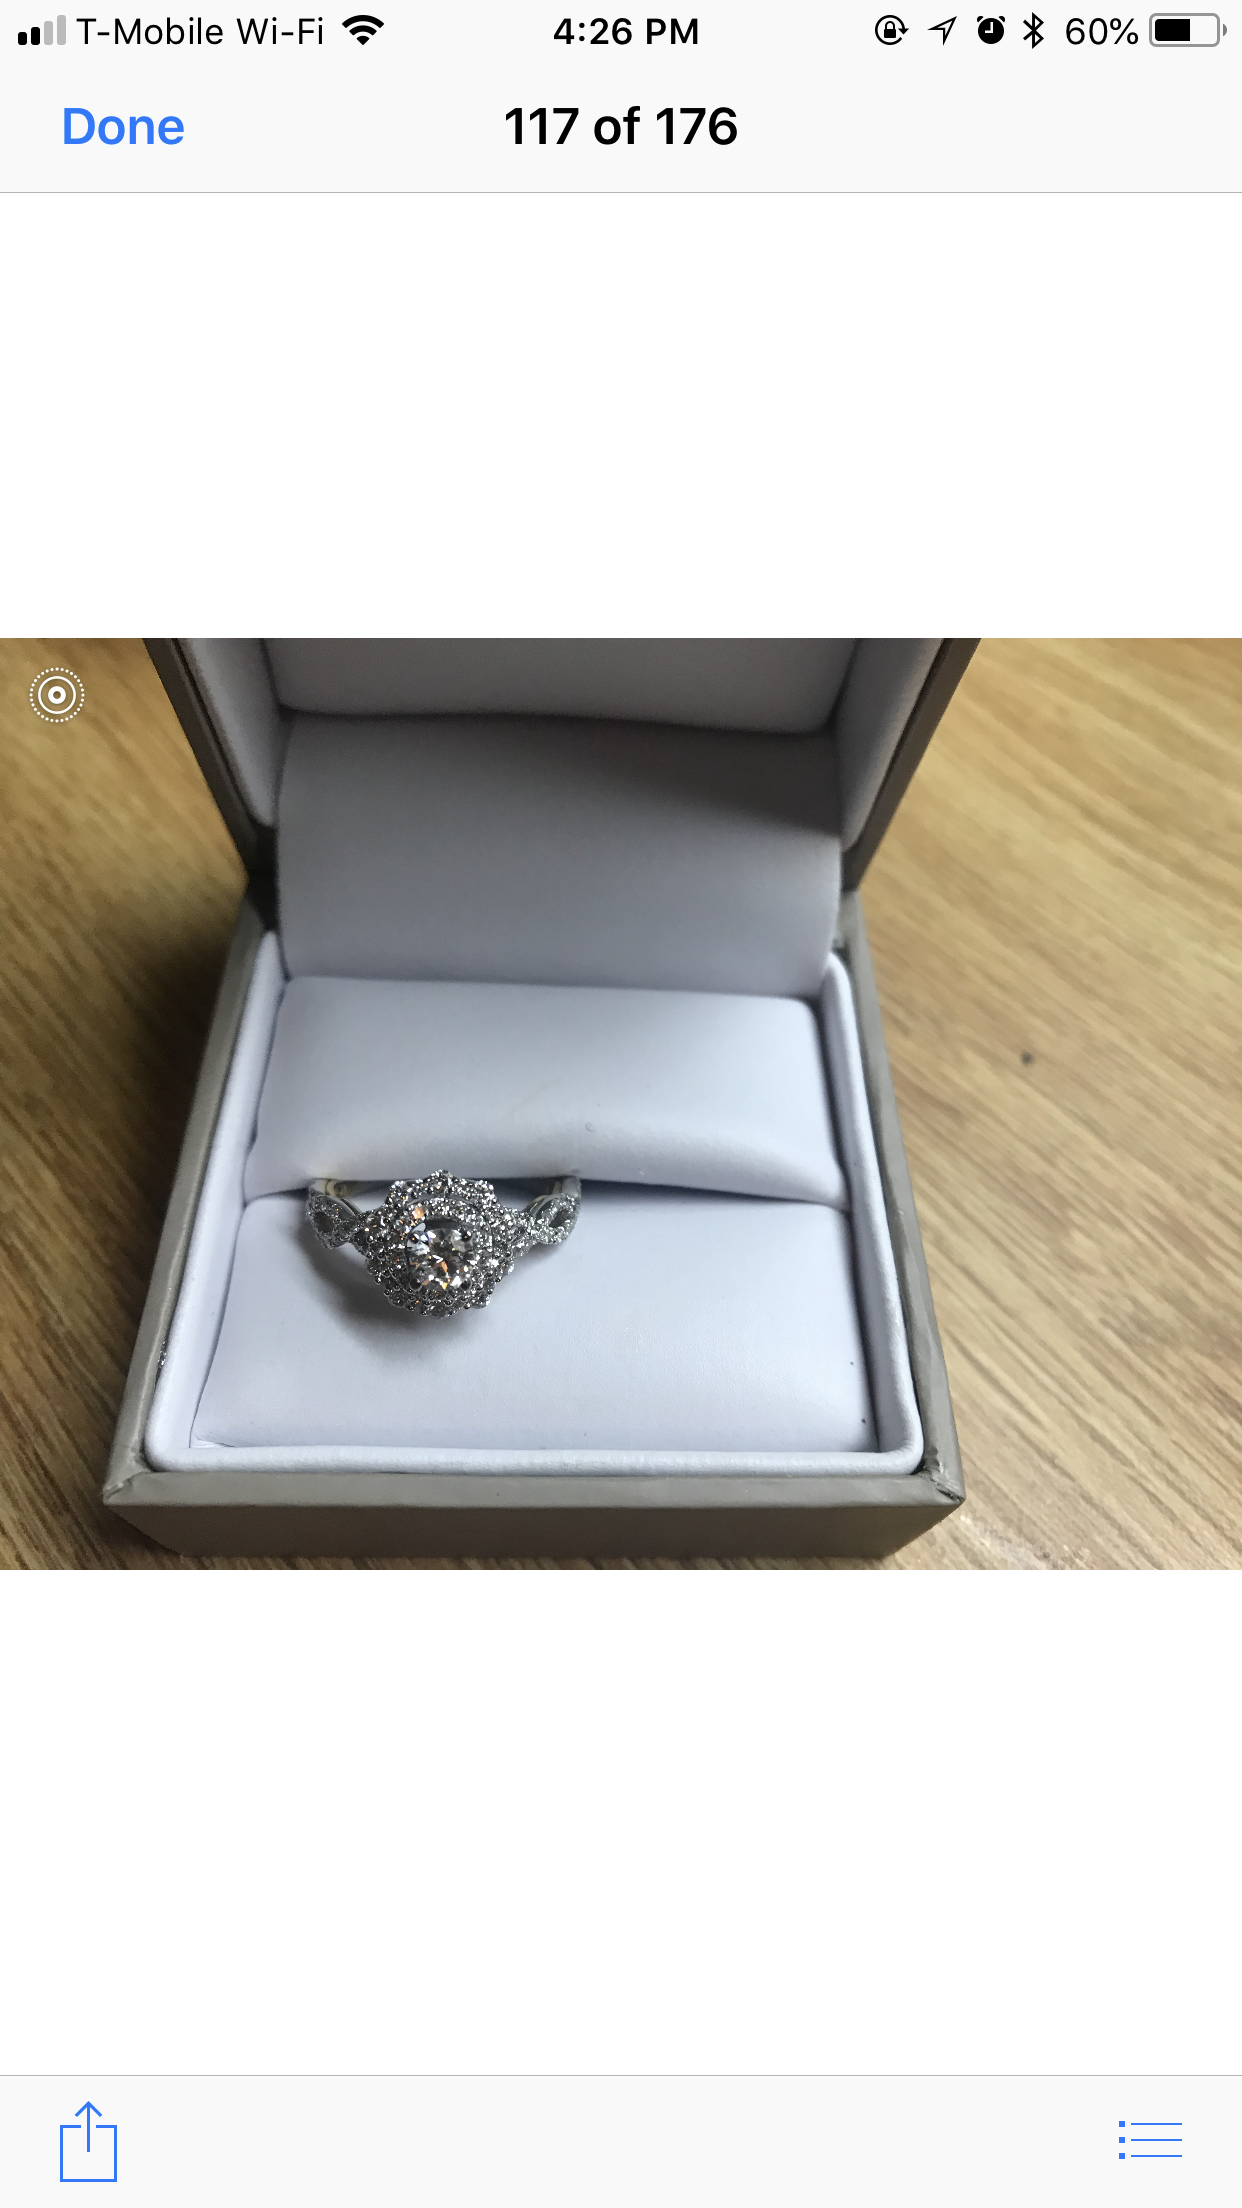 TRULY™ ZAC POSEN 7/8 CT. TW. DIAMOND DOUBLE HALO ENGAGEMENT RING IN 14